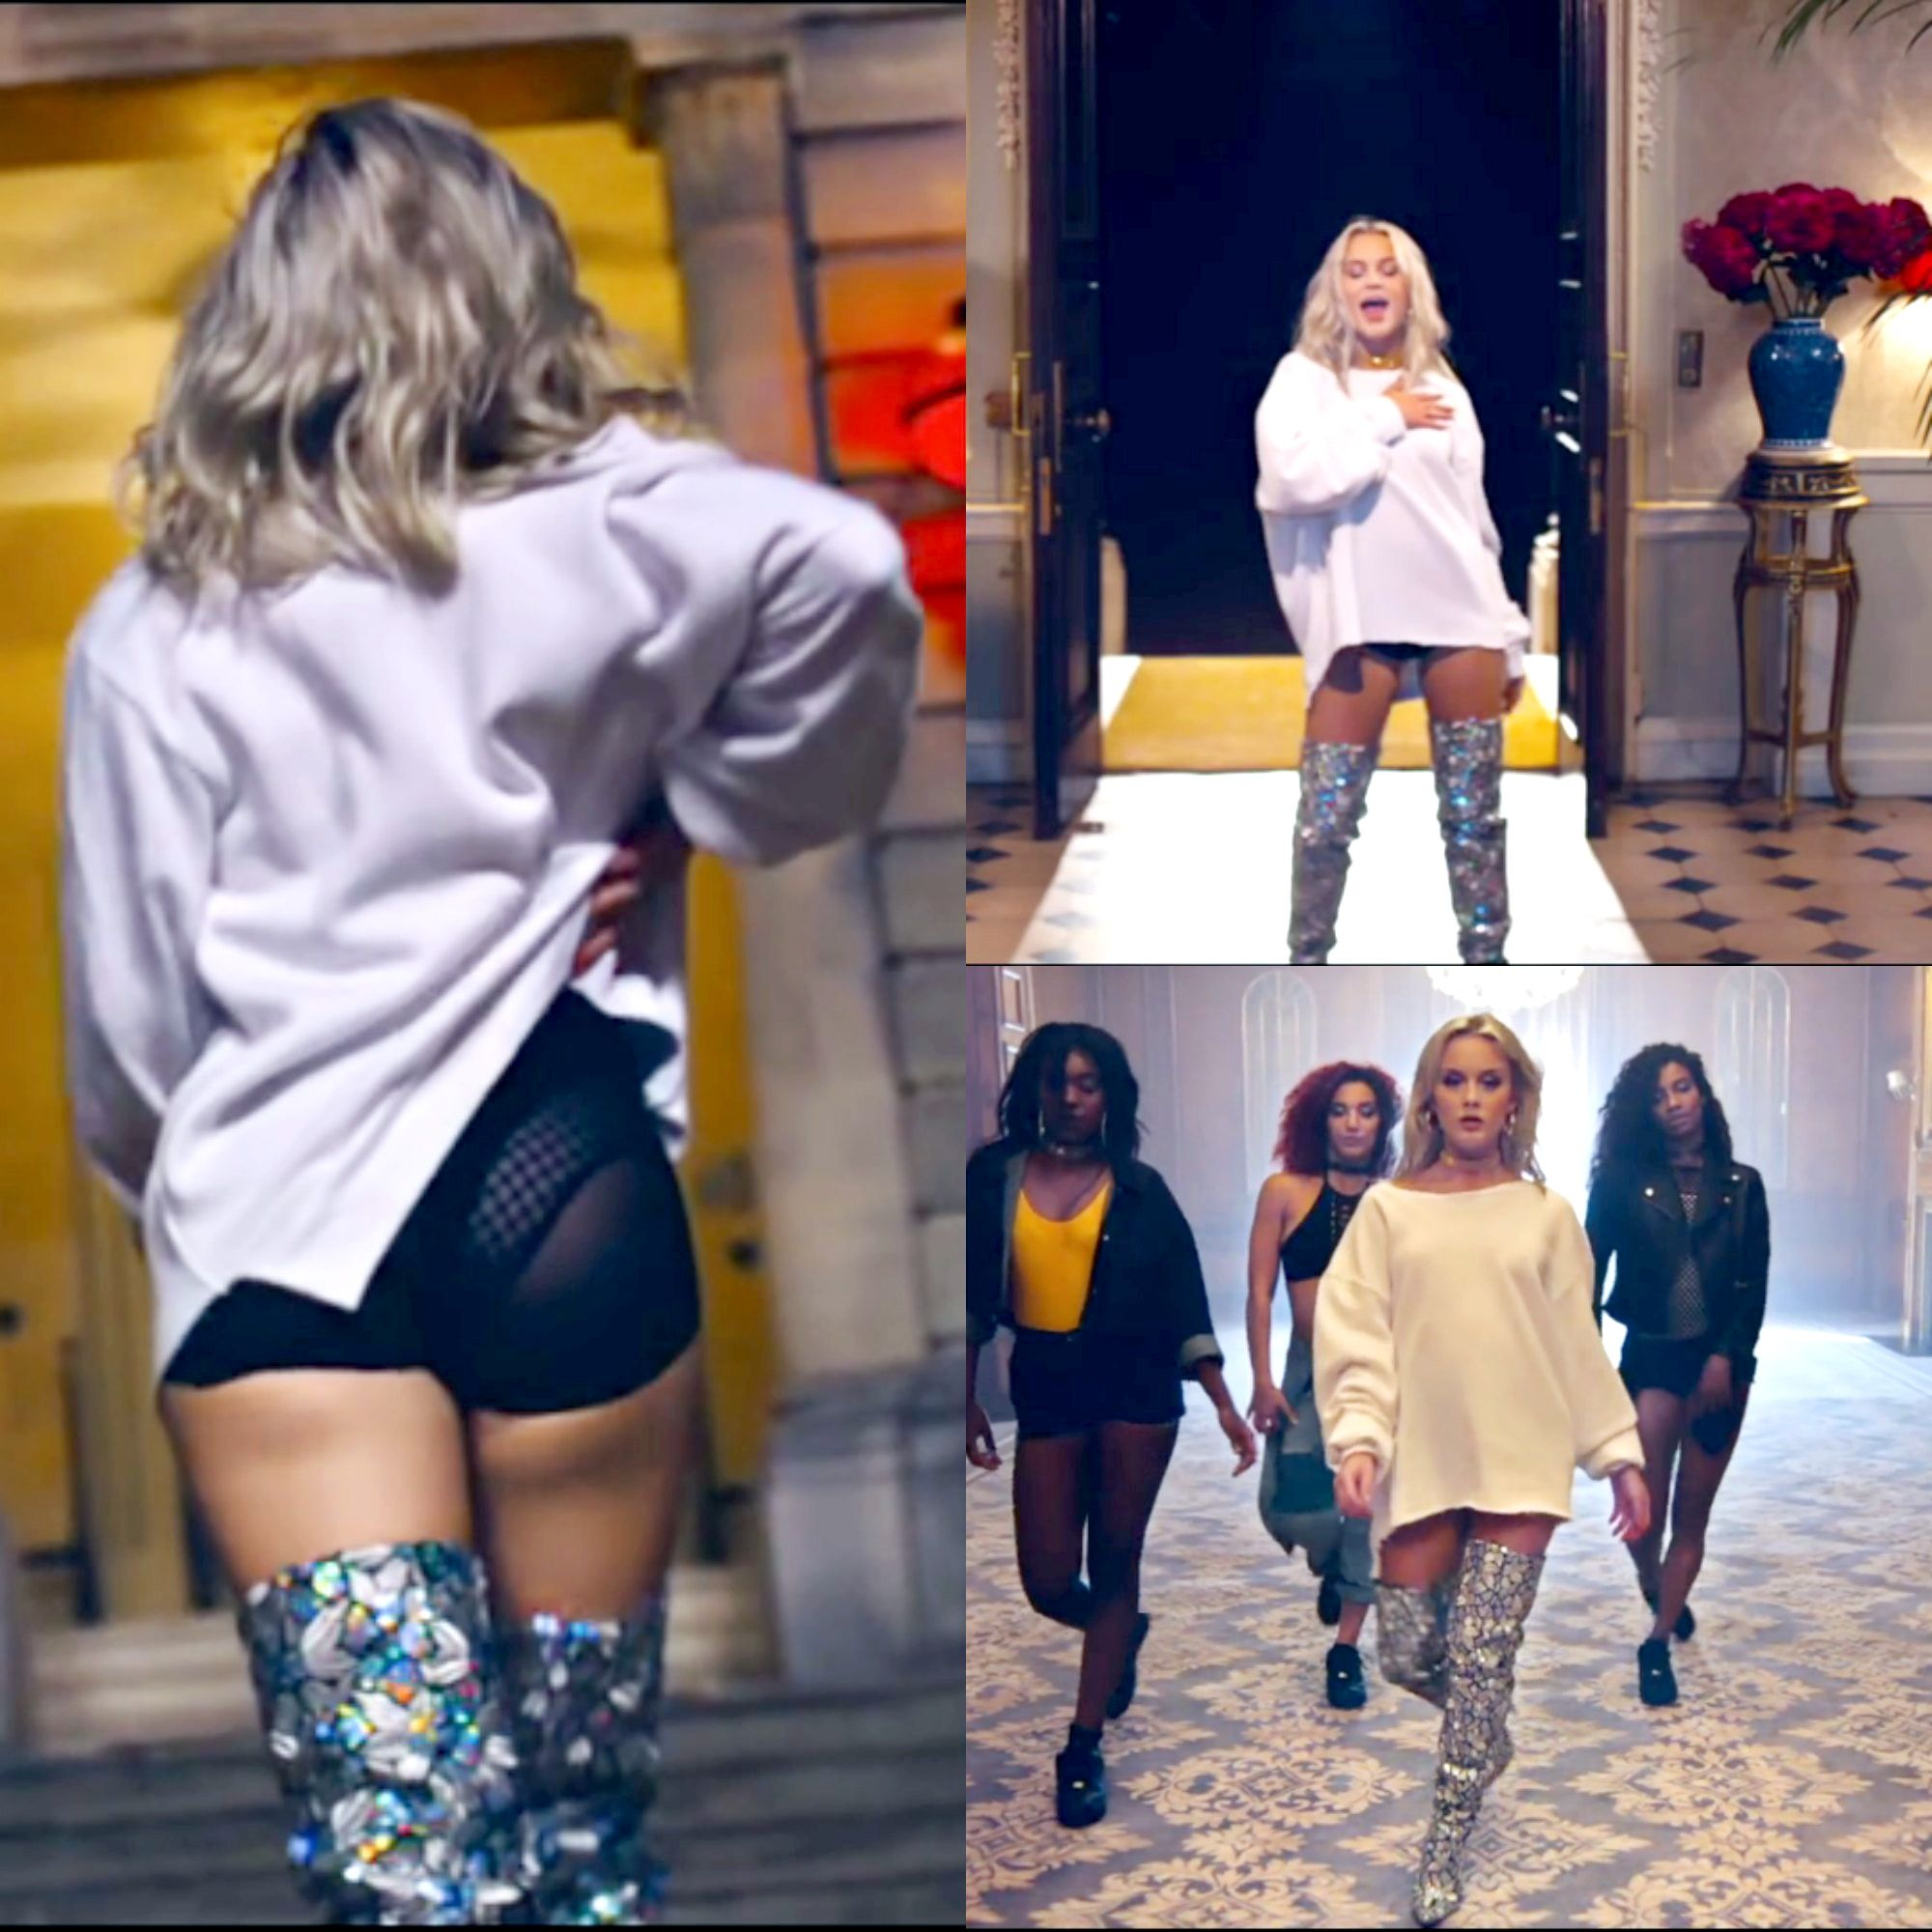 Zara Larsson - Ain't My Fault, outfit | My style | Pinterest | Celebrity, Queens and Woman crush